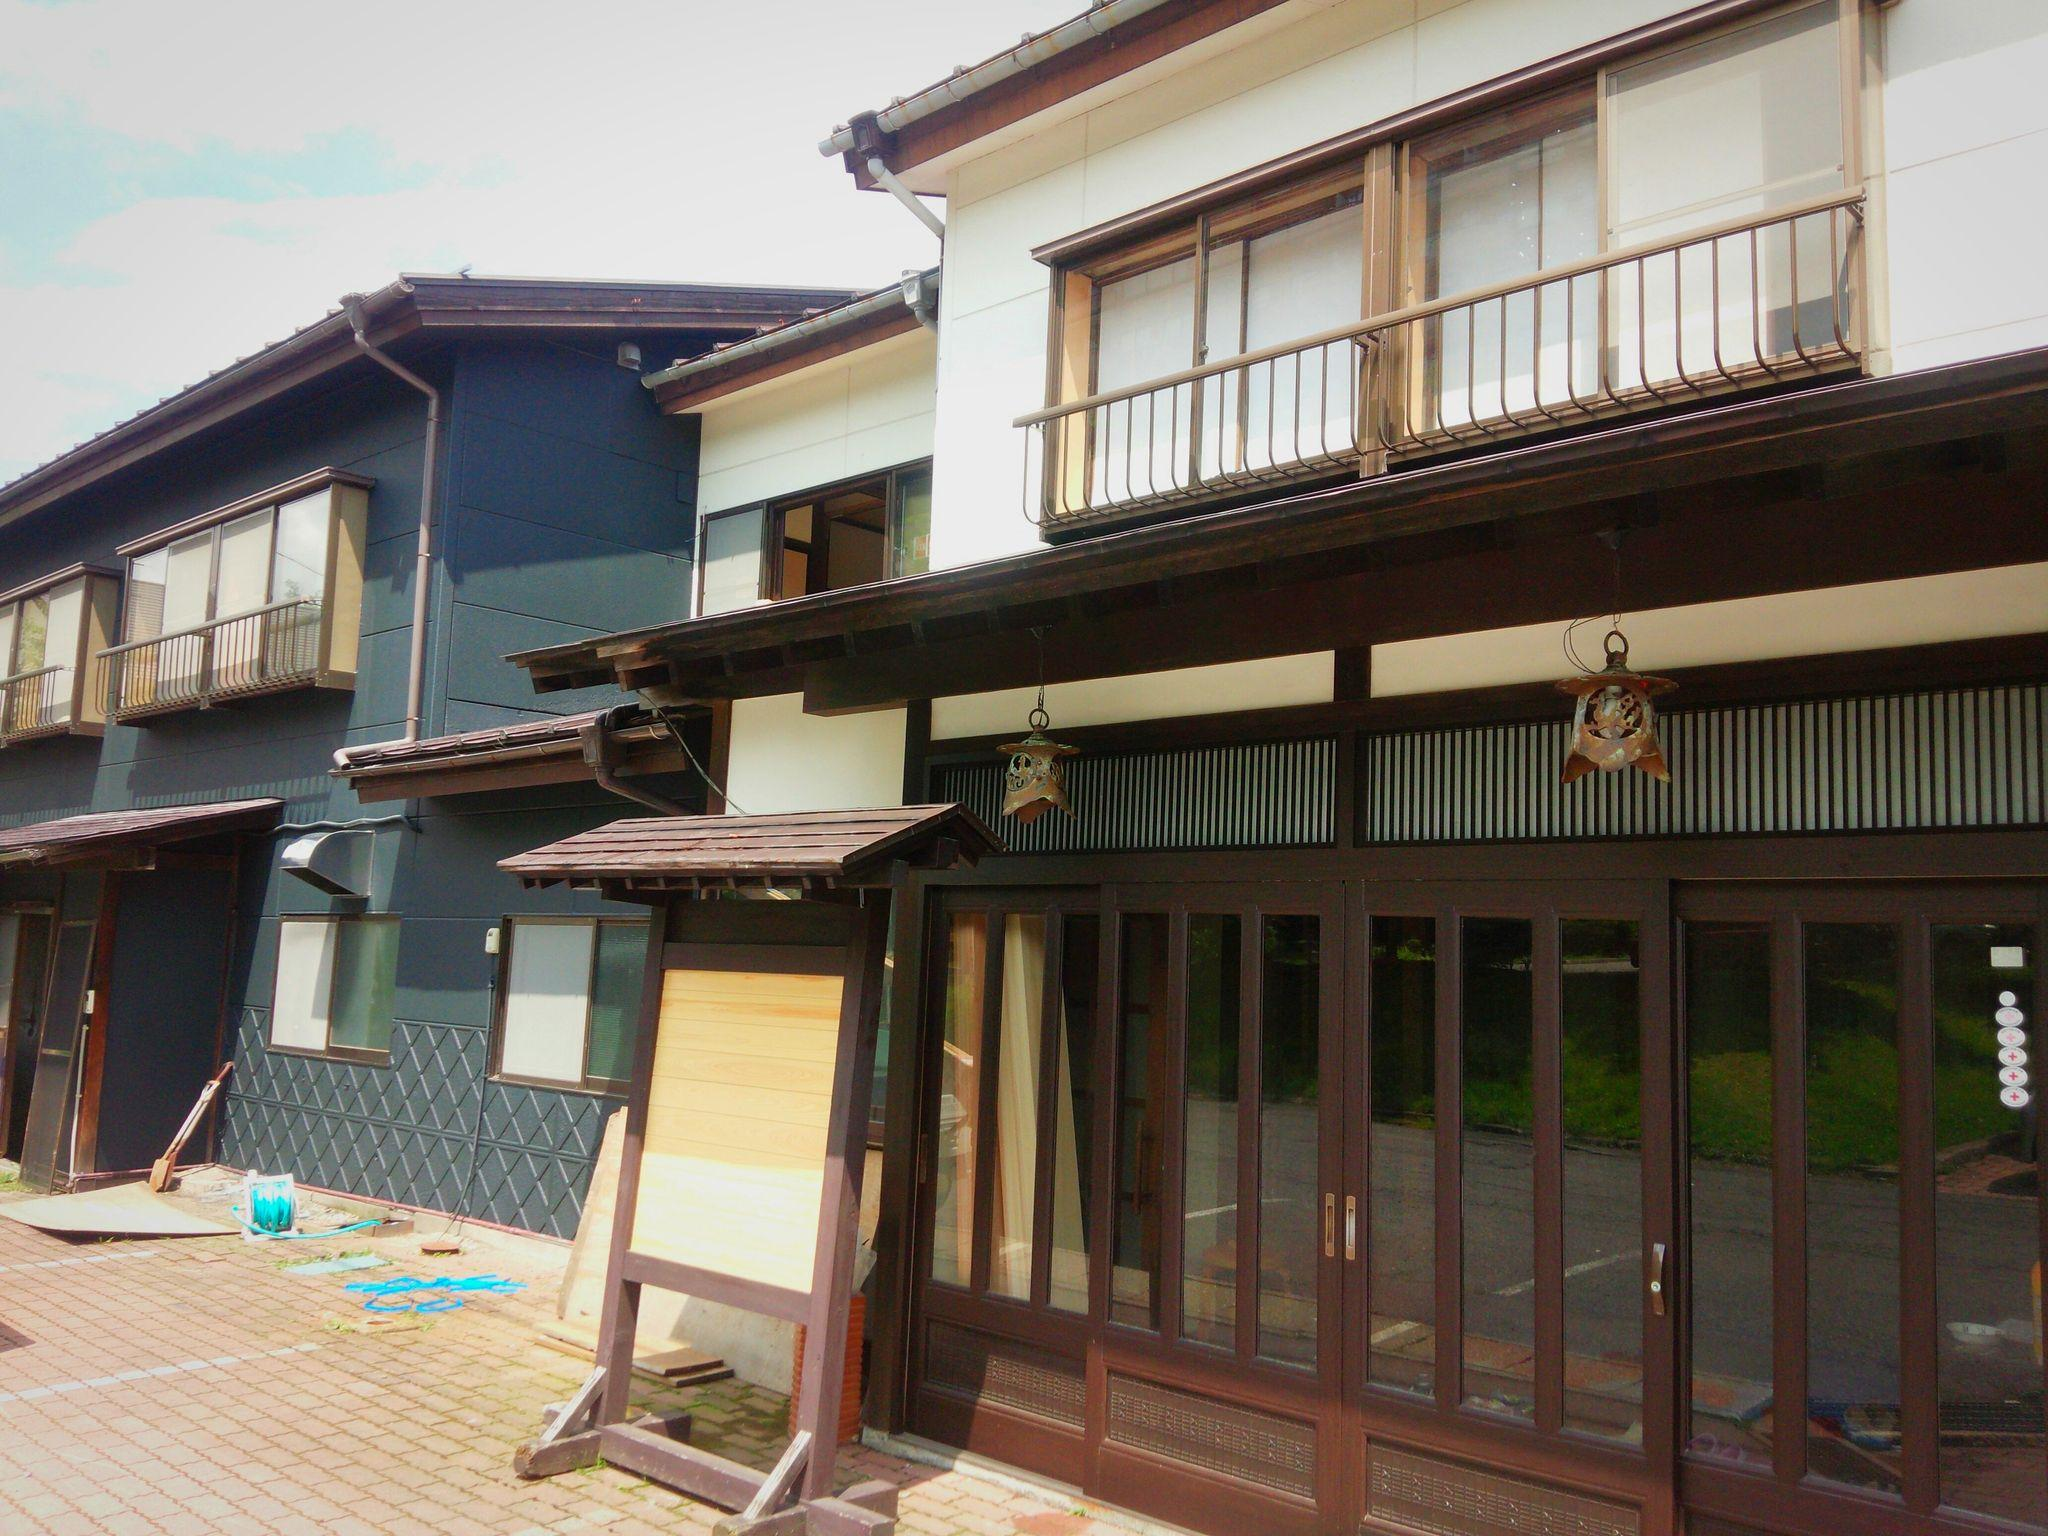 Best Price On Kusatsu Onsen Yado Eidaya In Kusatsu Reviews